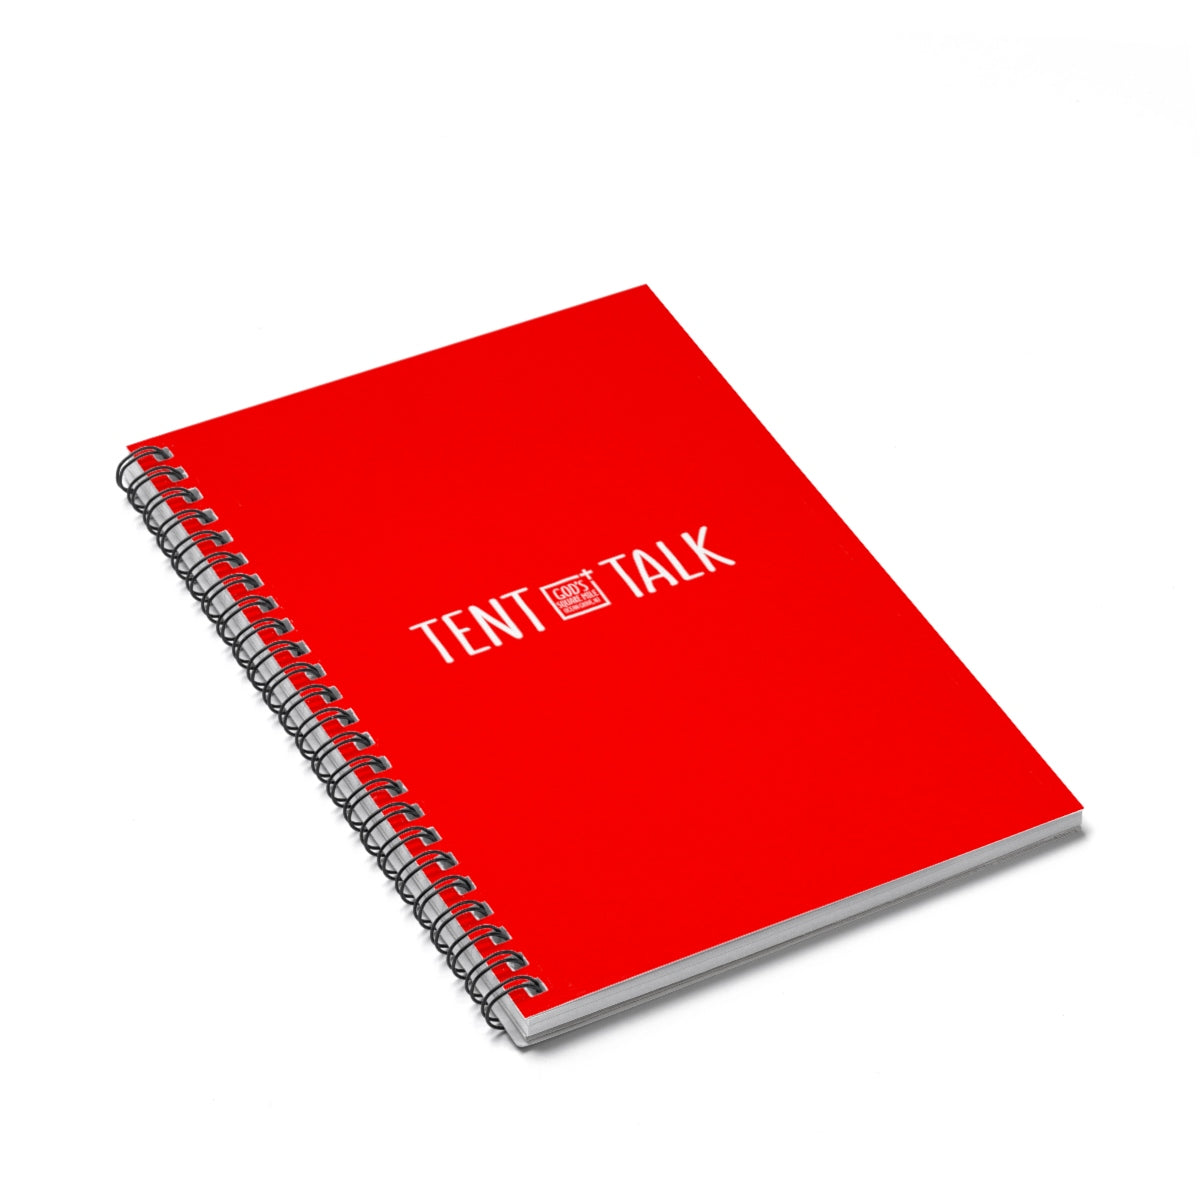 Tent Talk Spiral Notebook - Red